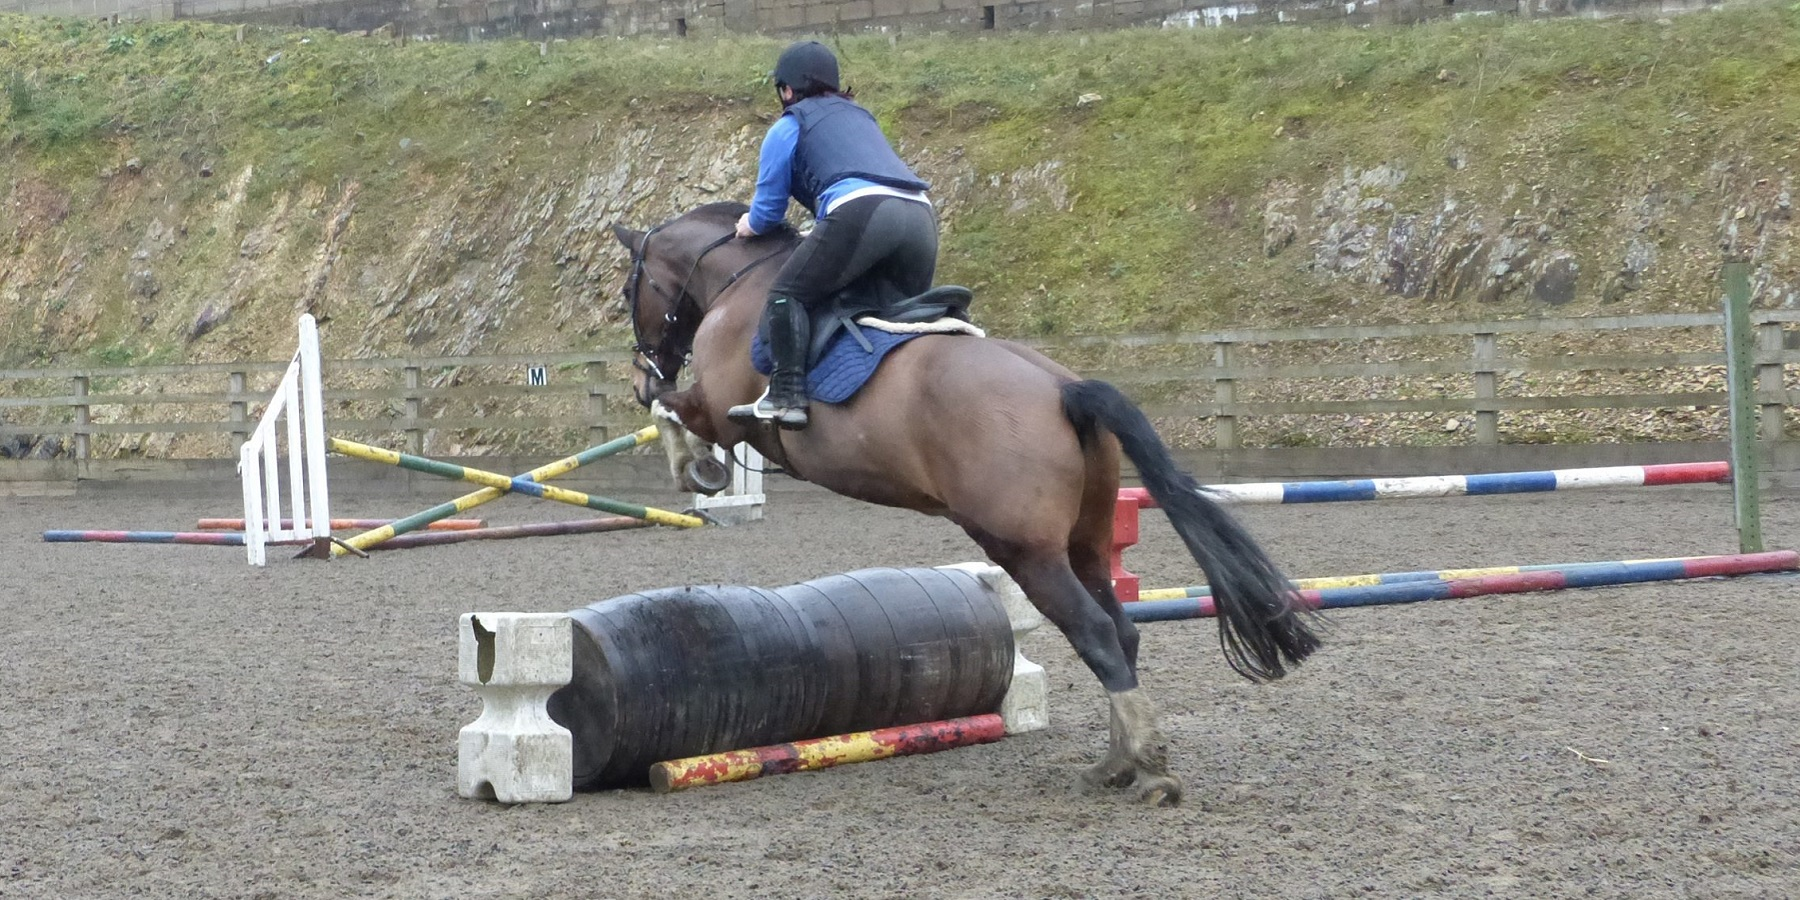 Jumping Lesson At Bel-Air Equestrian Centre